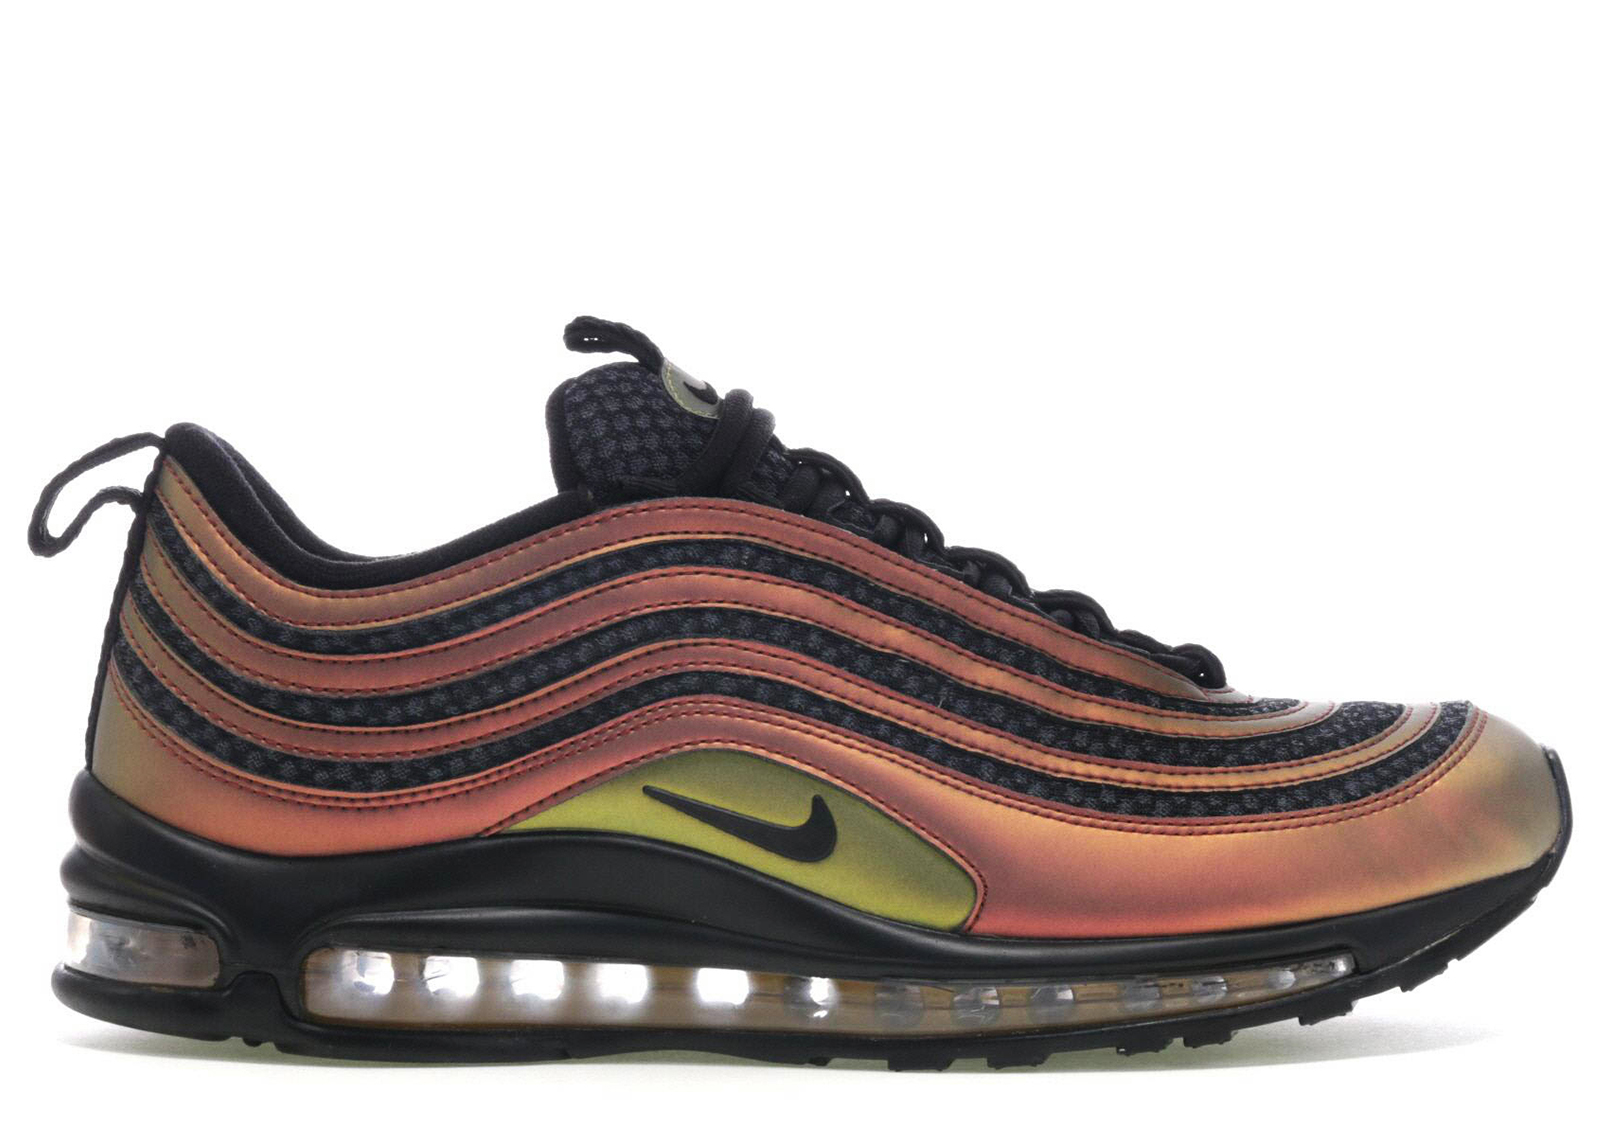 Skepta x Nike Air Max Deluxe BlackCopper White For Sale